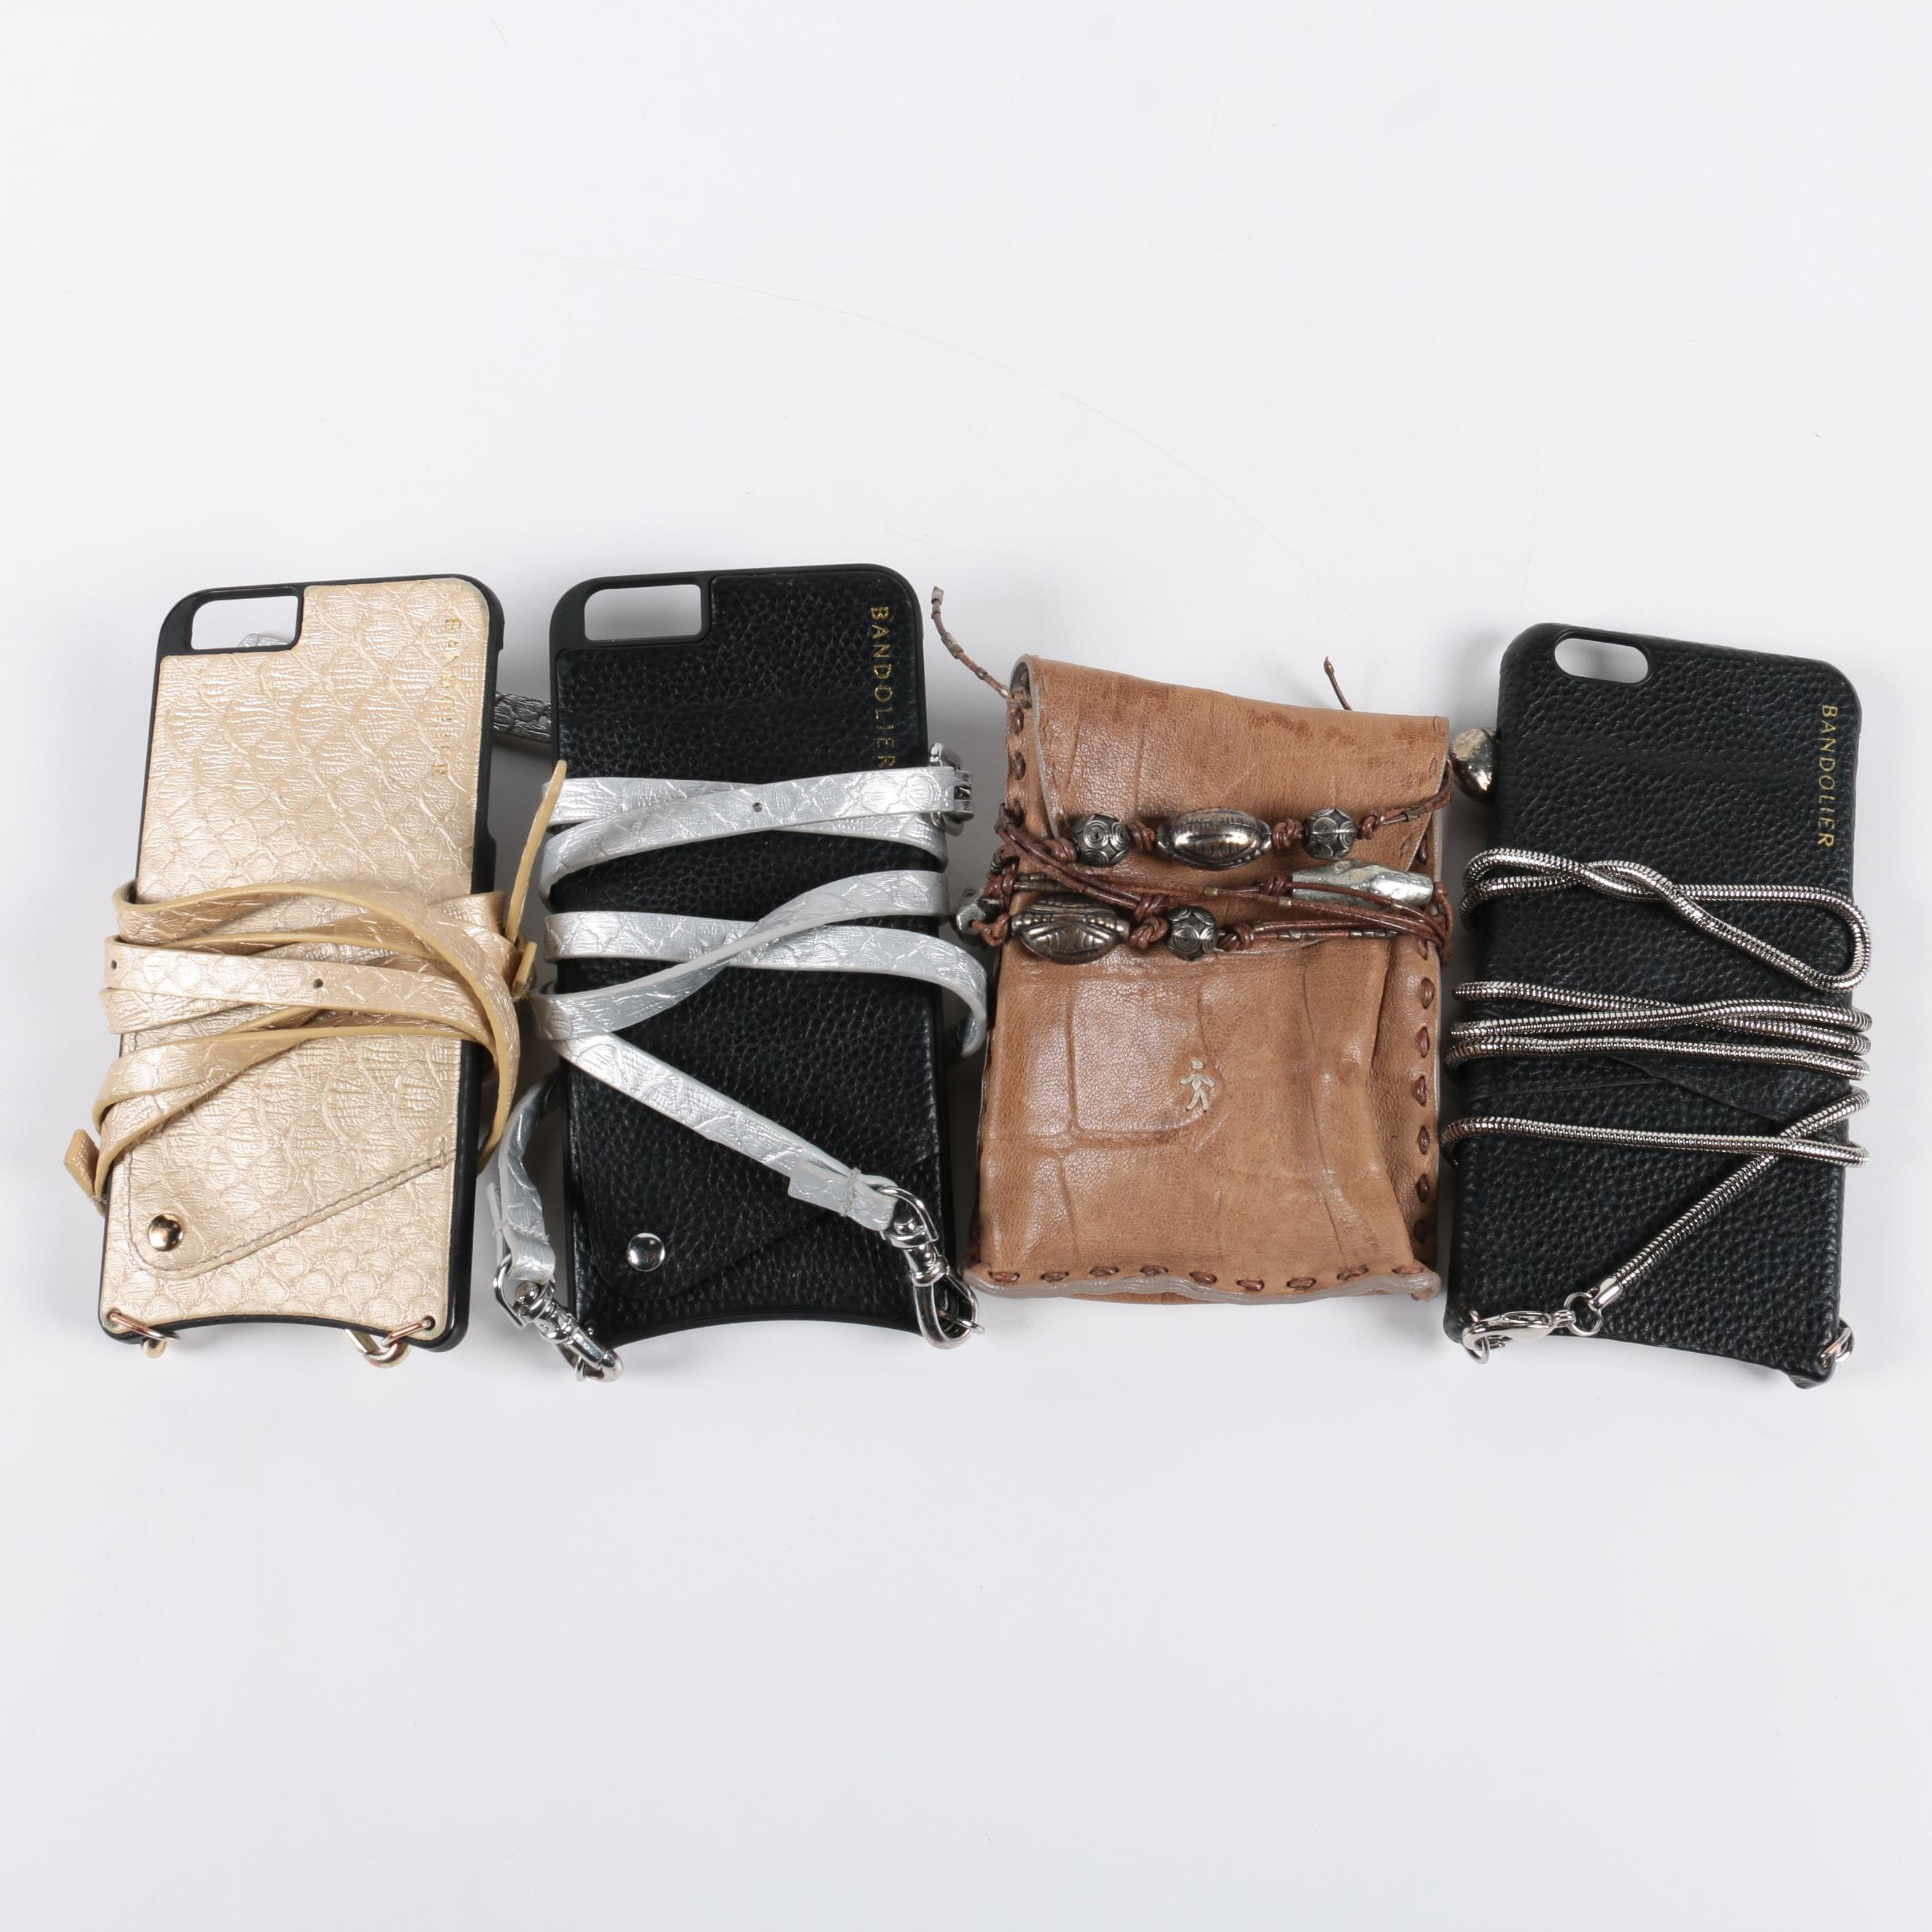 Bandolier iPhone Cases with Lanyards